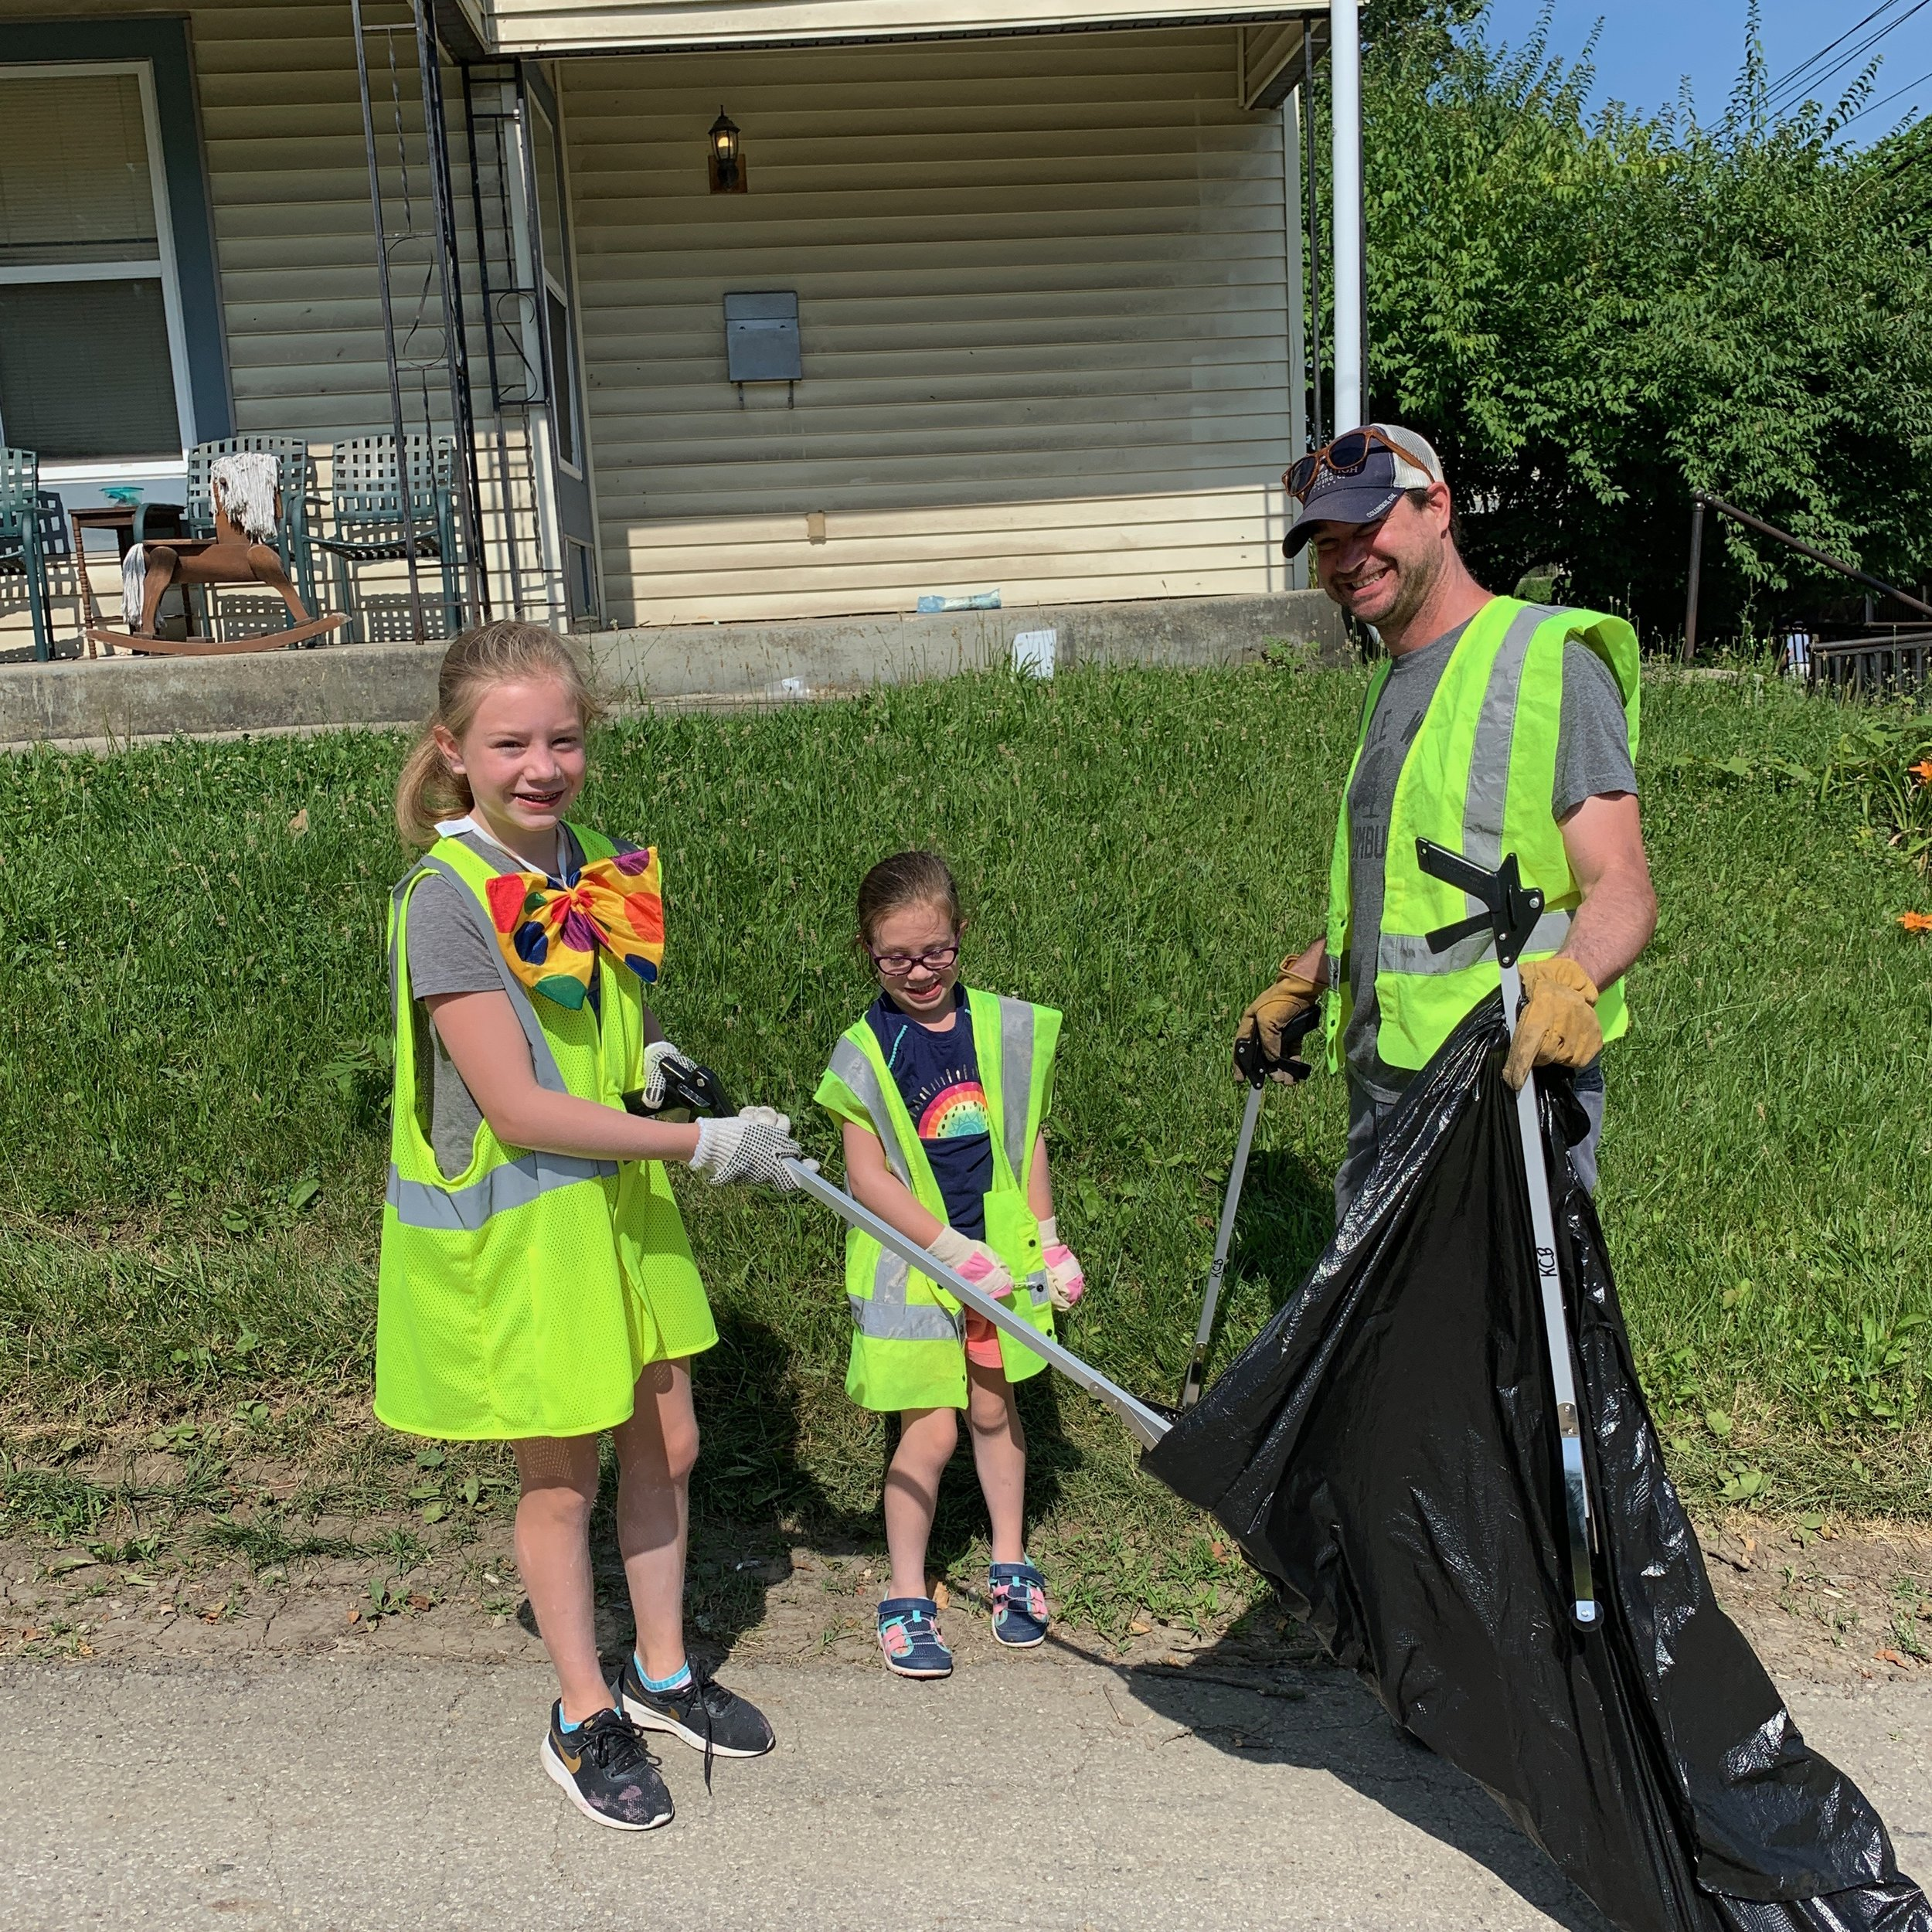 2019-07-02_Litter-CleanUp_00004.jpeg